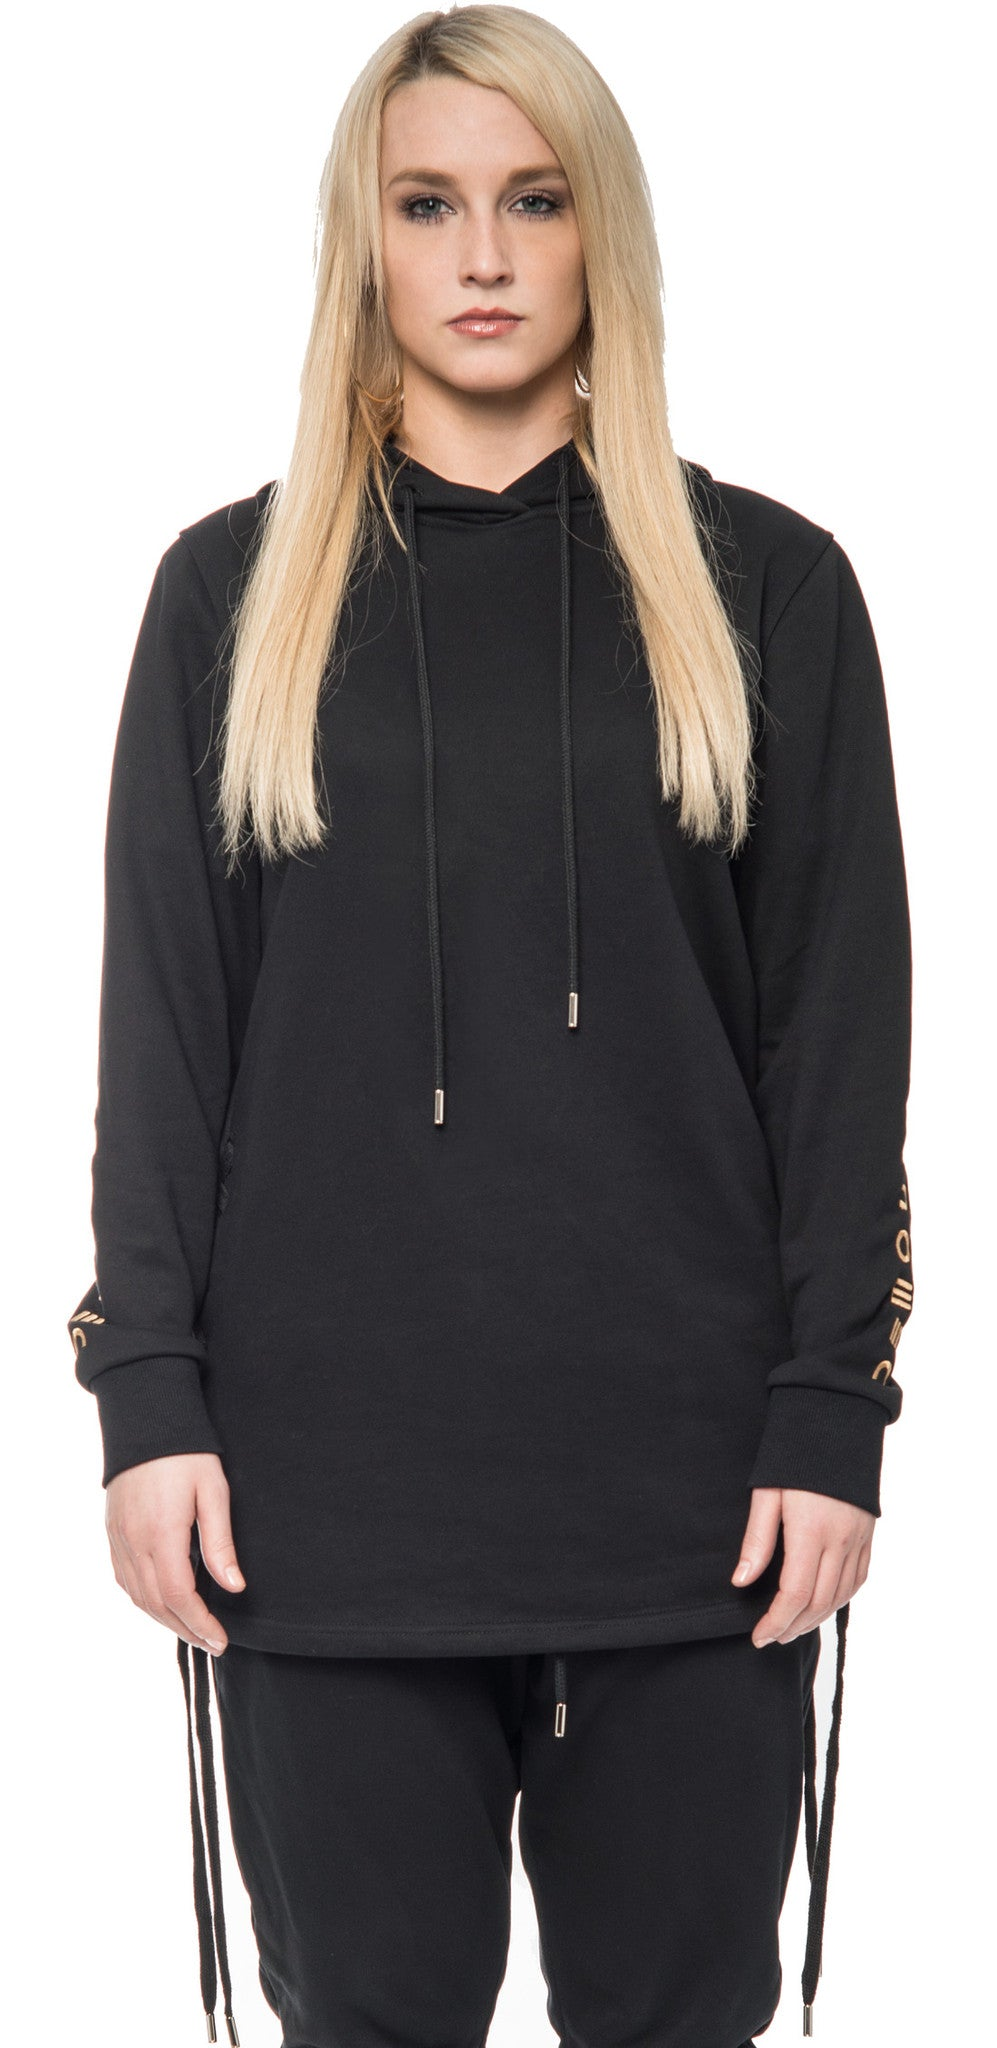 Black Side Strings Hoodie